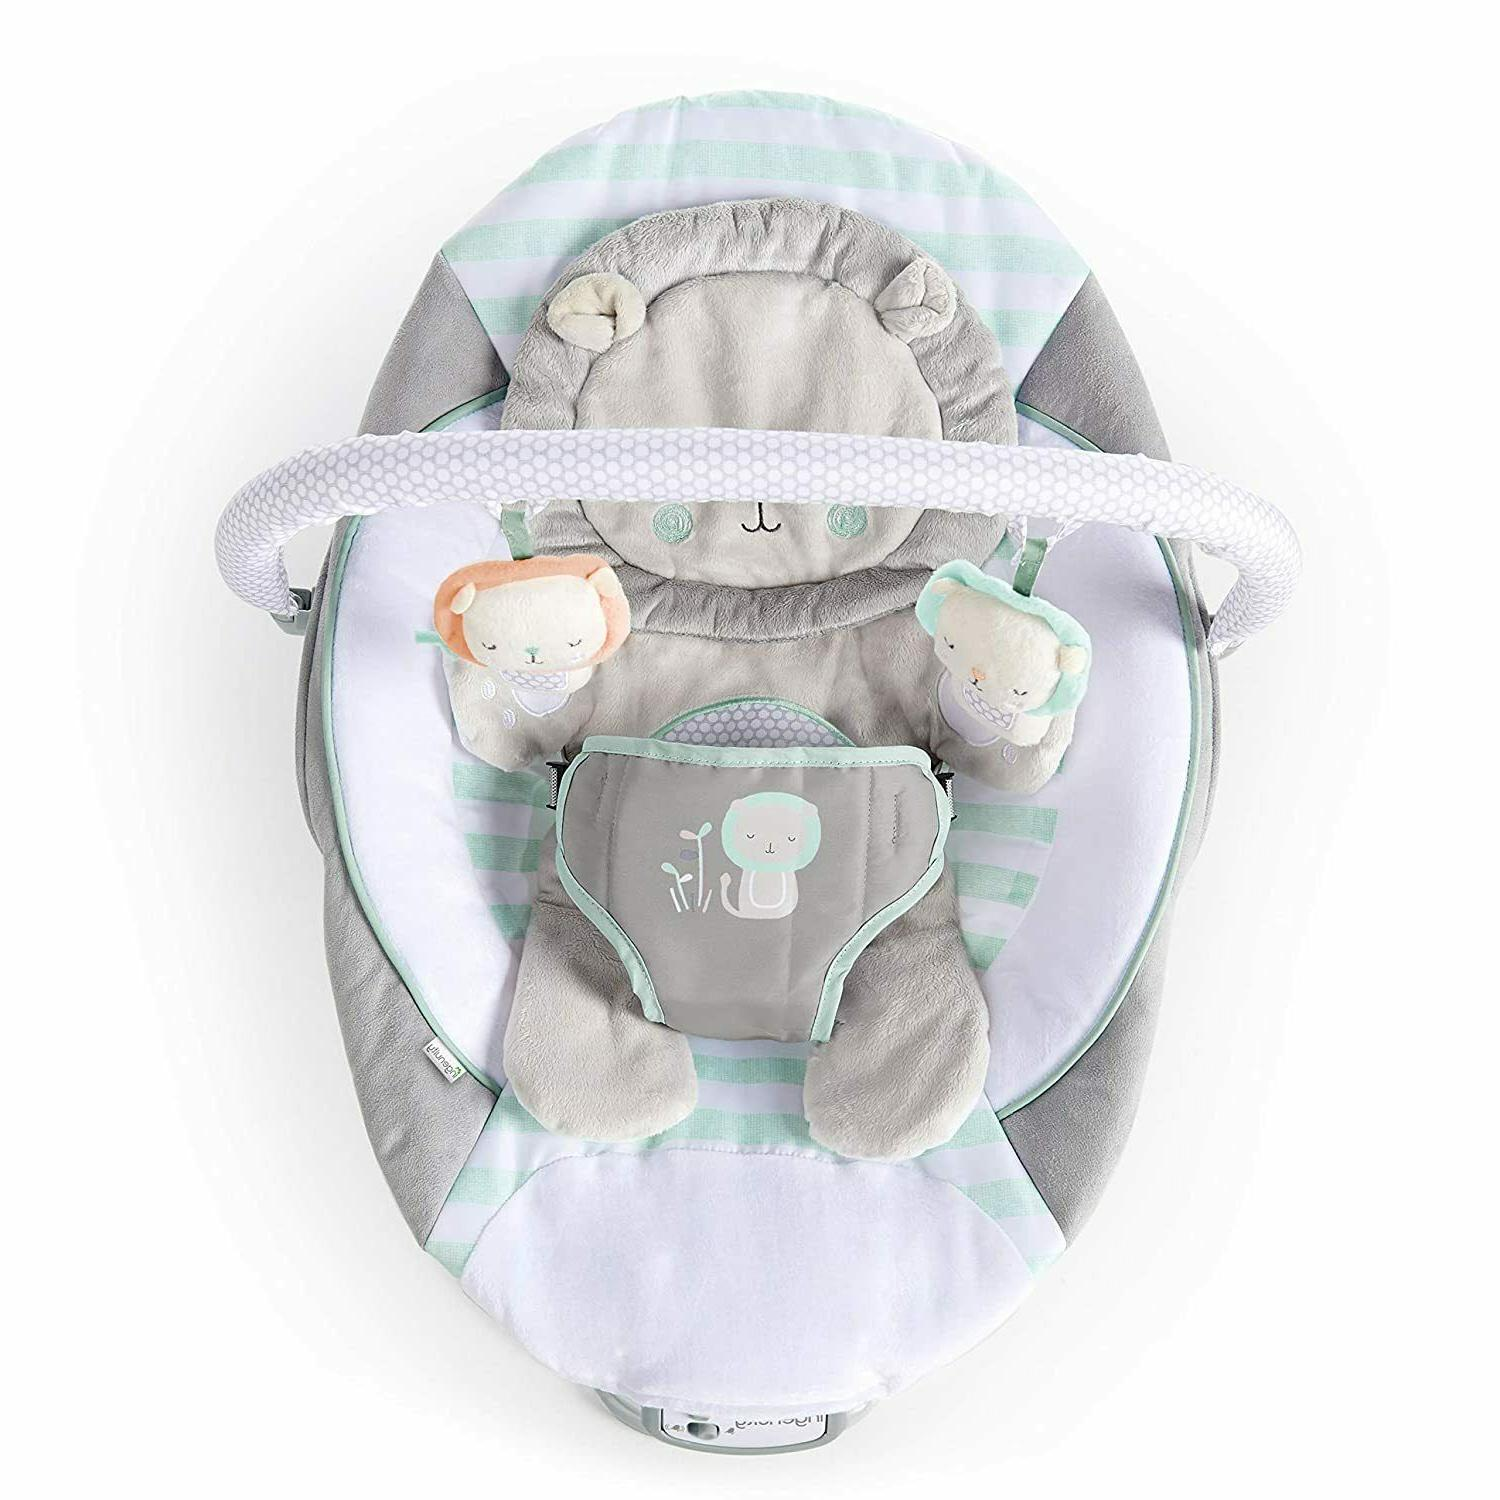 cradling bouncer seat with vibration and melodies